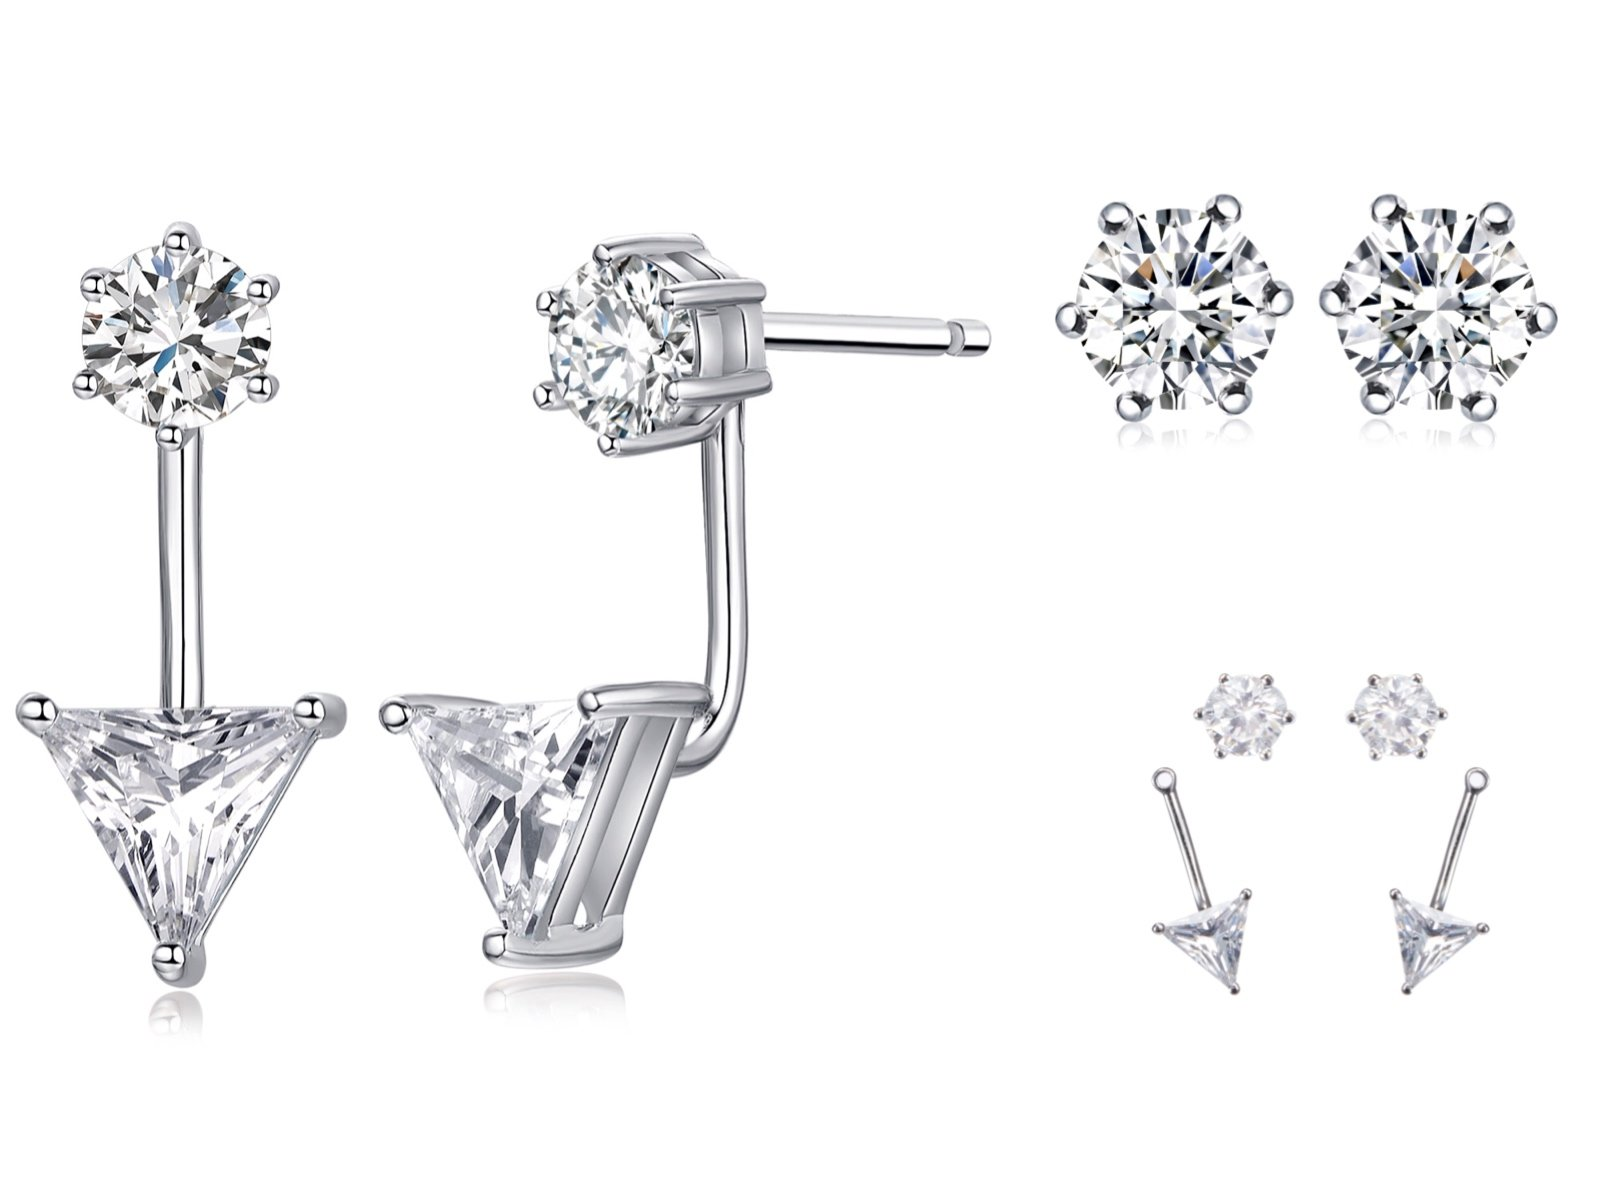 Sterling Silver Ear Jacket Round Triangle Two-way Cubic Zirconia AAA Quality Stud Earring Set''It's a circle'' gift